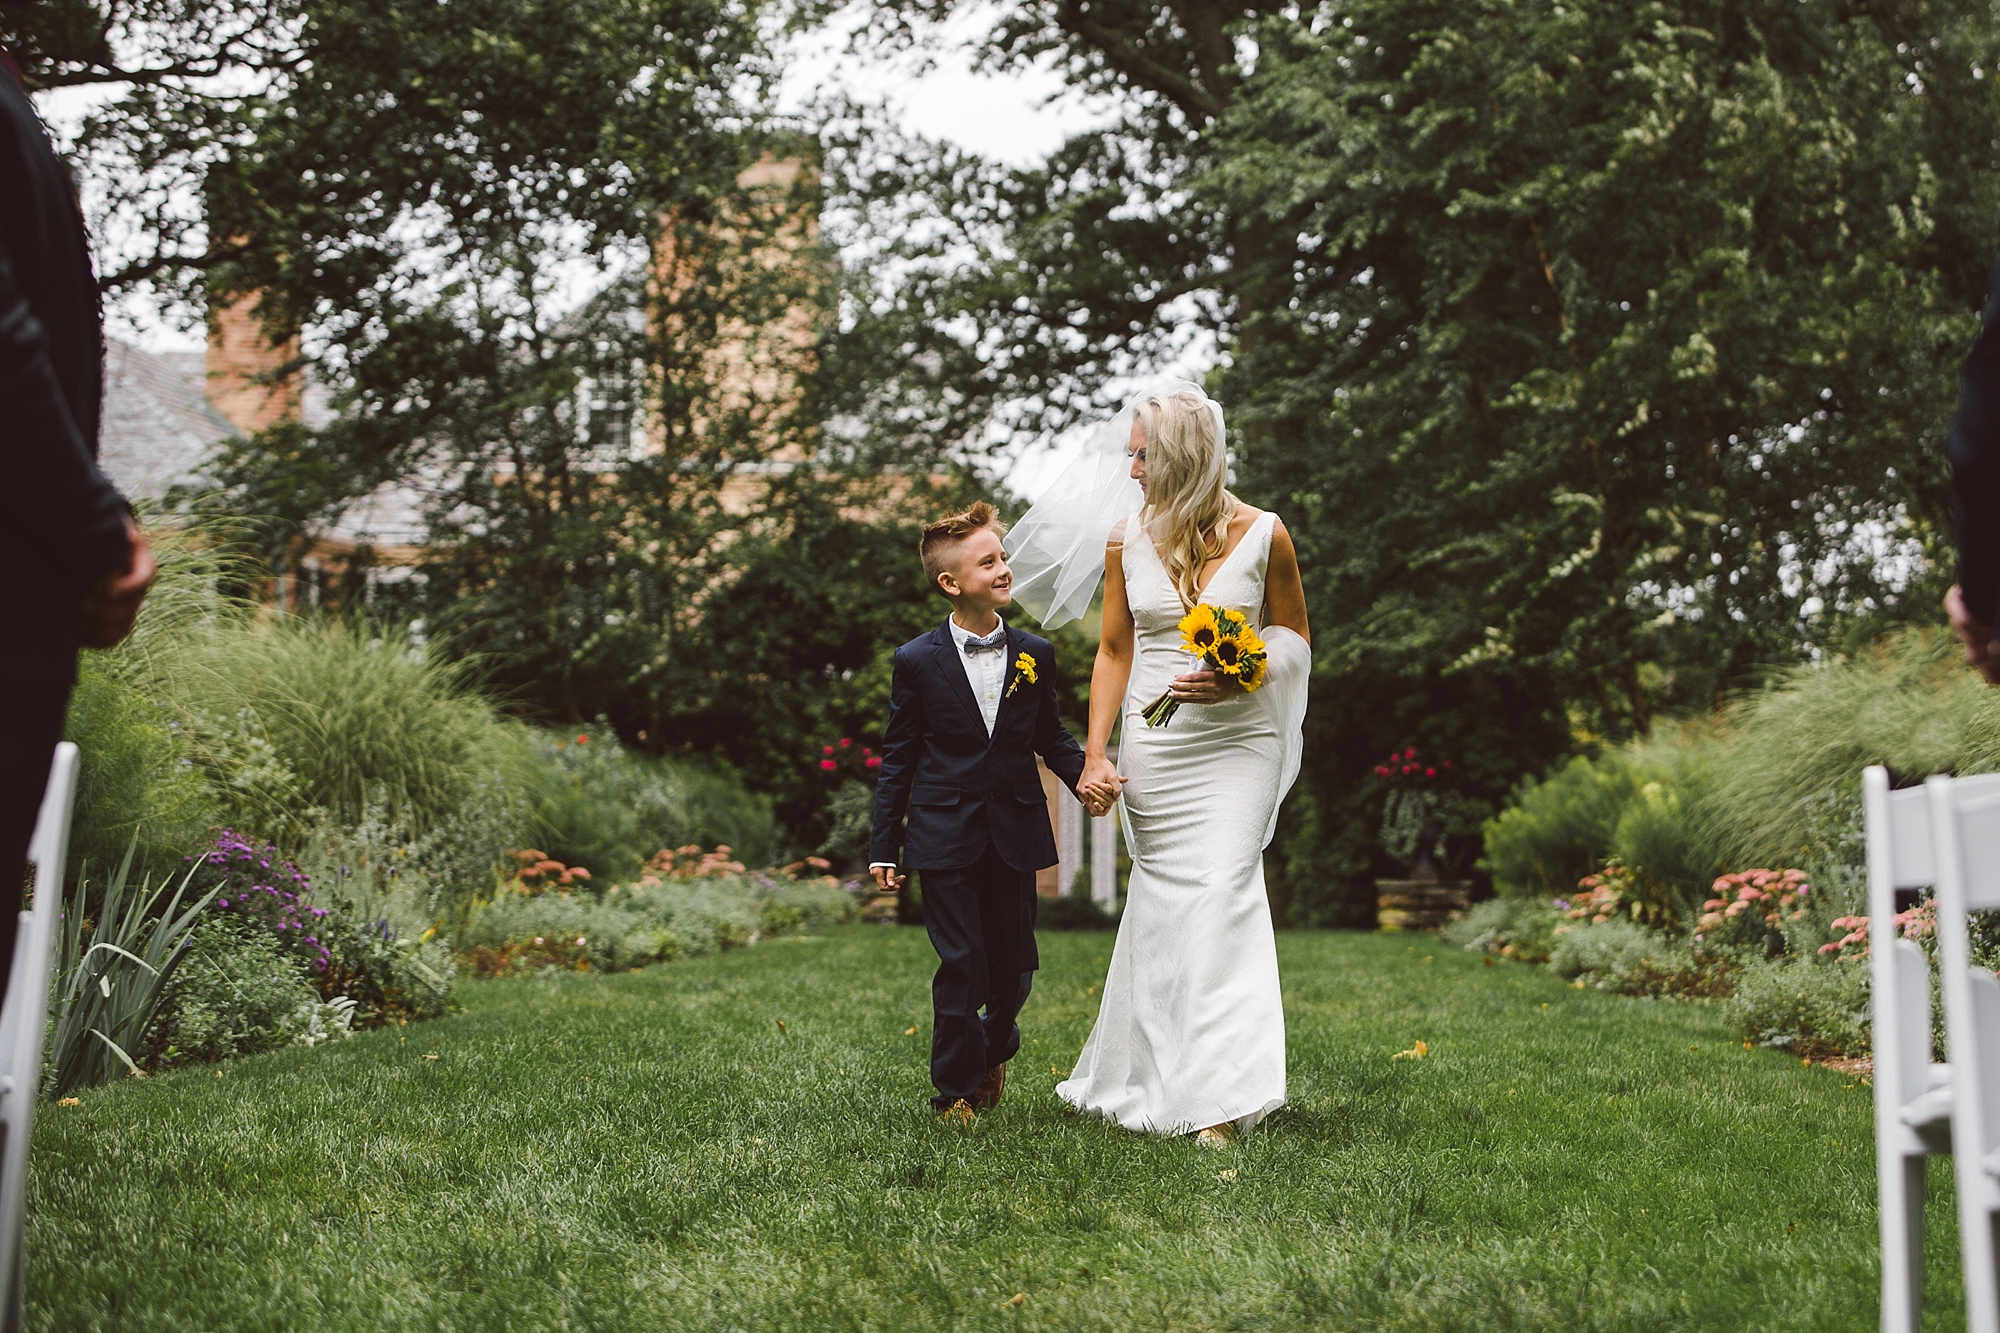 Druemore_Joe_Mac_Creative_Philadelphila_Wedding_Photography_drumore_estate_pequea_Best_lancaster_wedding_venues_0032.jpg